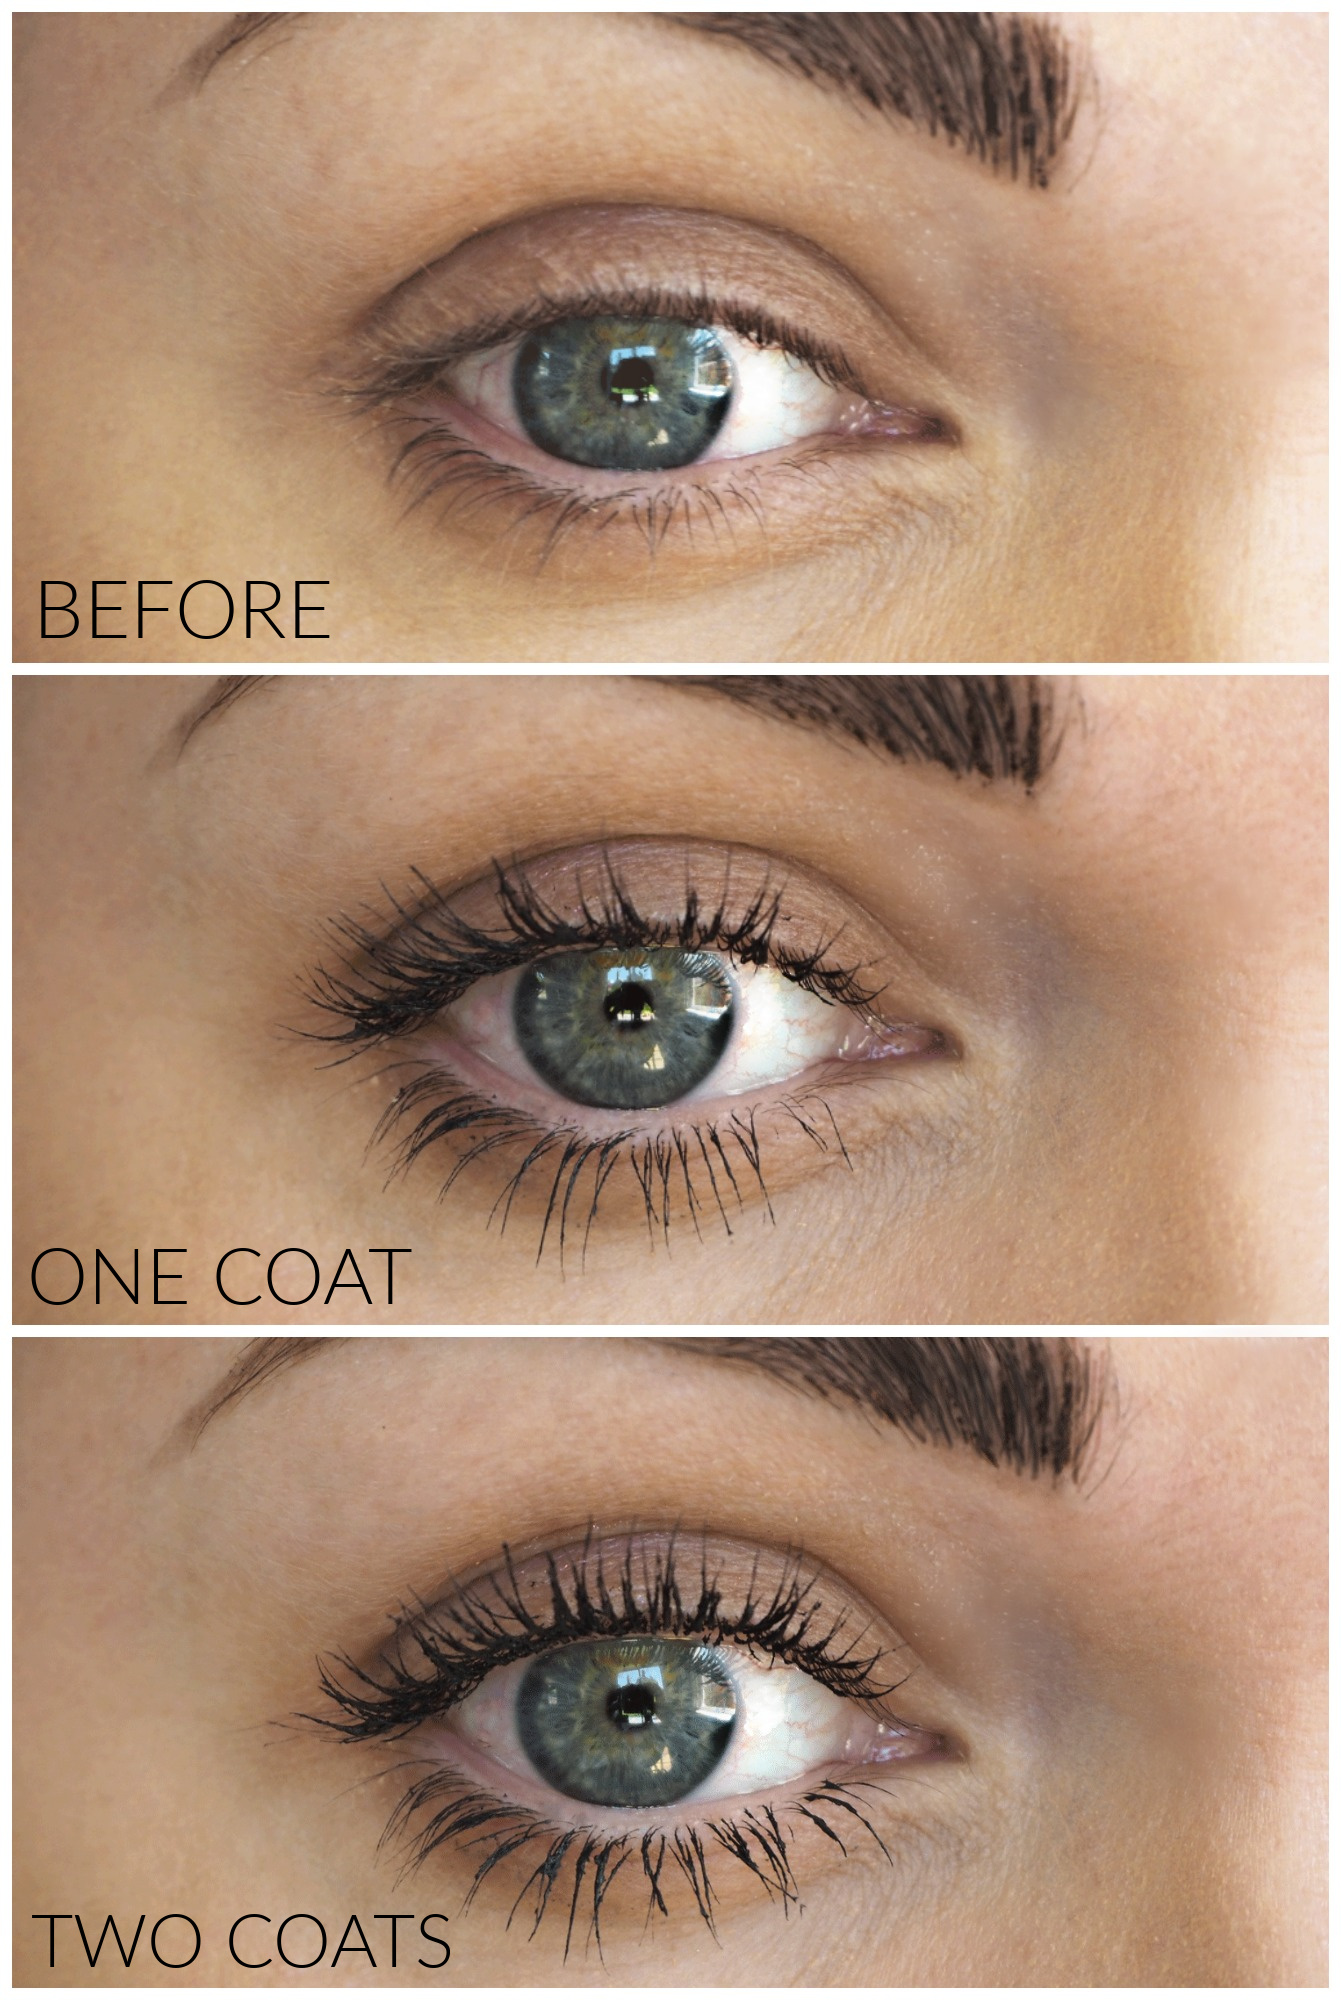 urban decay lash freak mascara review before and after photos